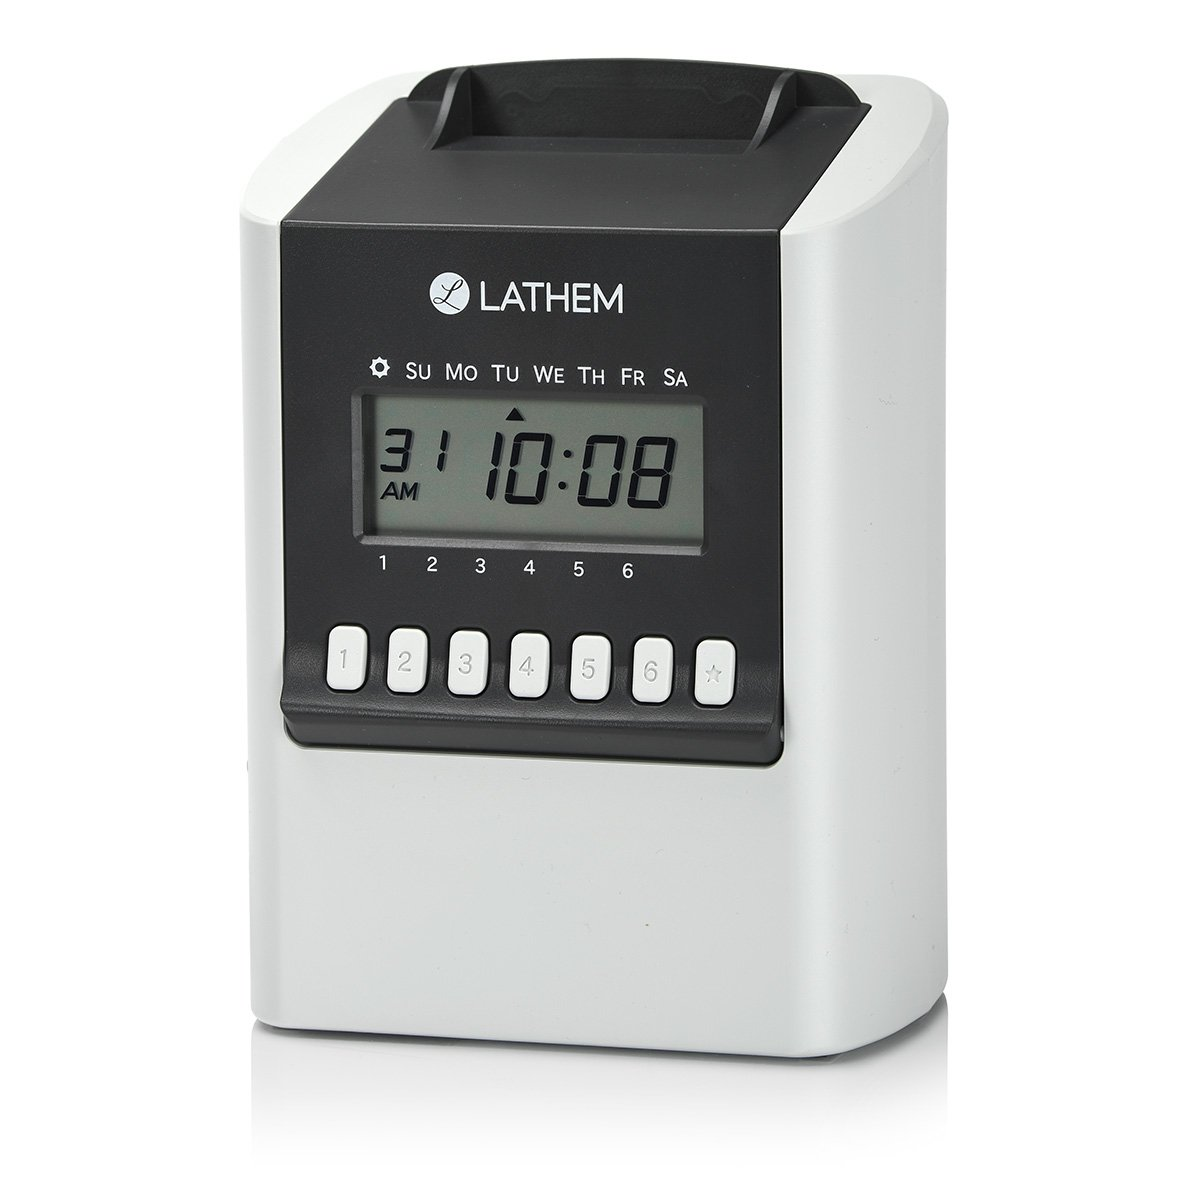 Lathem 700E Calculating Electronic Time Clock, Requires Lathem E17 Time Cards (Sold Separately) (700E) by Lathem